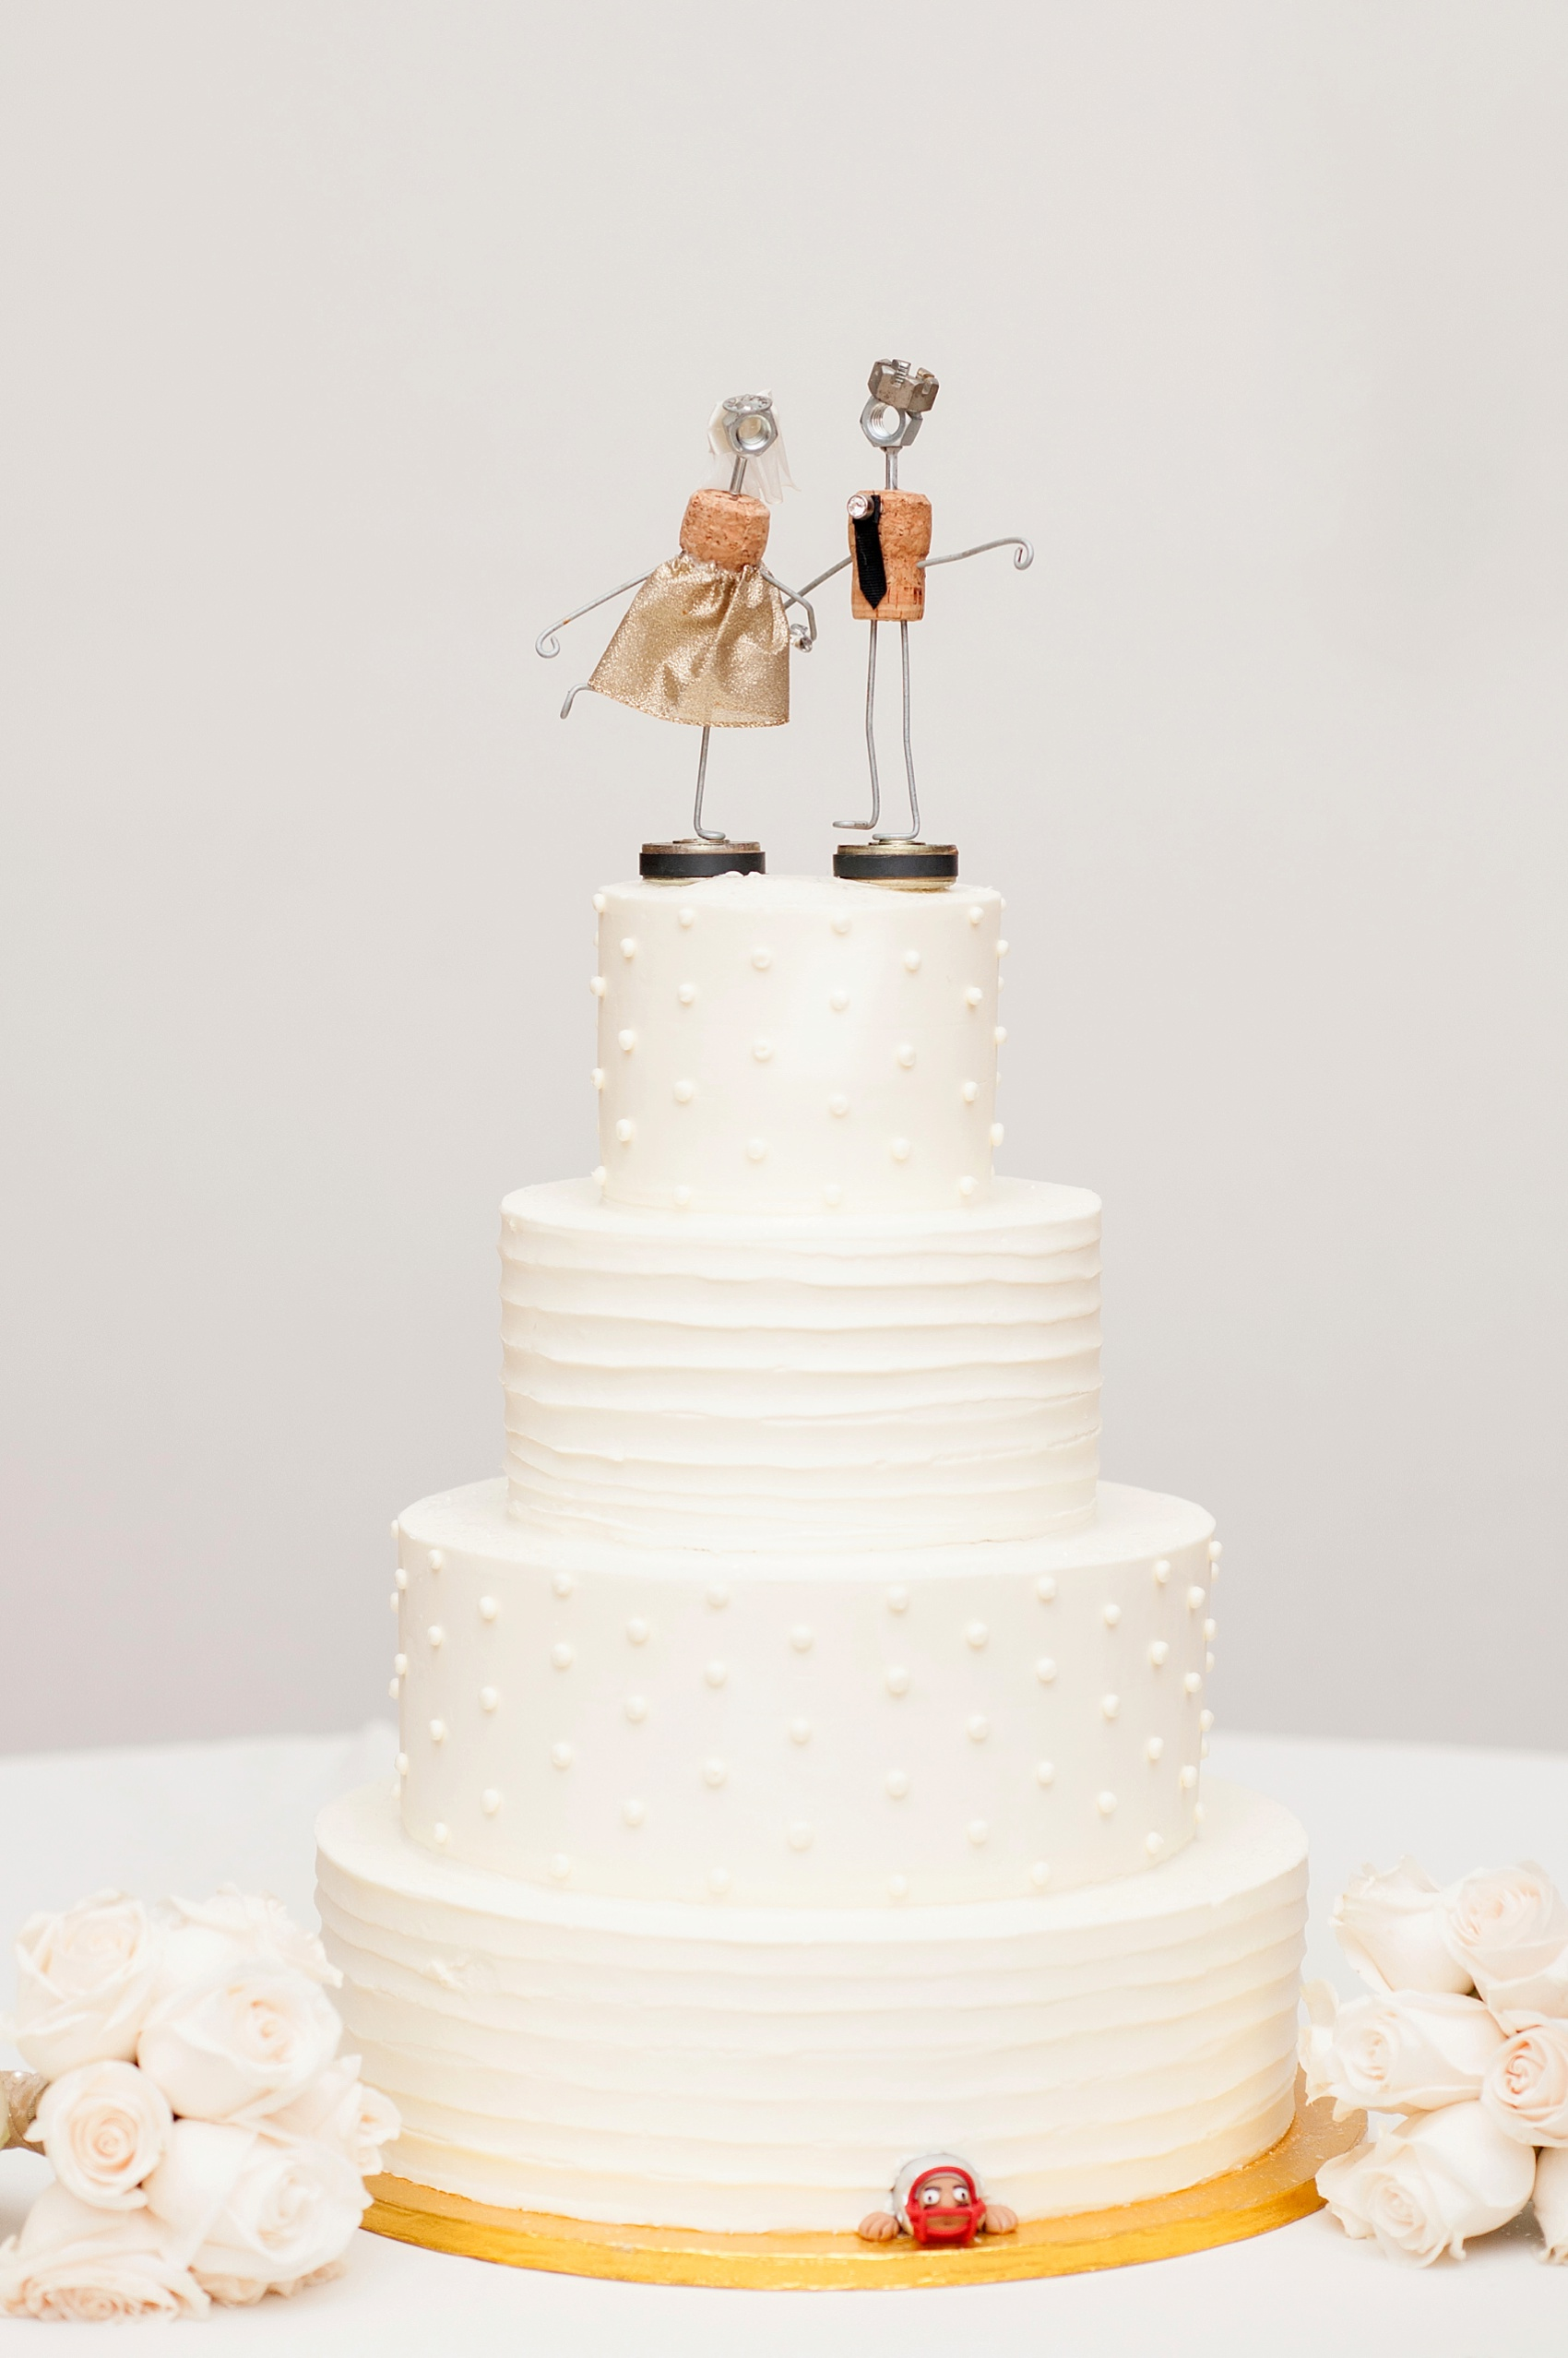 White tiered cake for a wedding at The Center, downtown Cincinnati, Ohio. Photos by Mikkel Paige Photography.